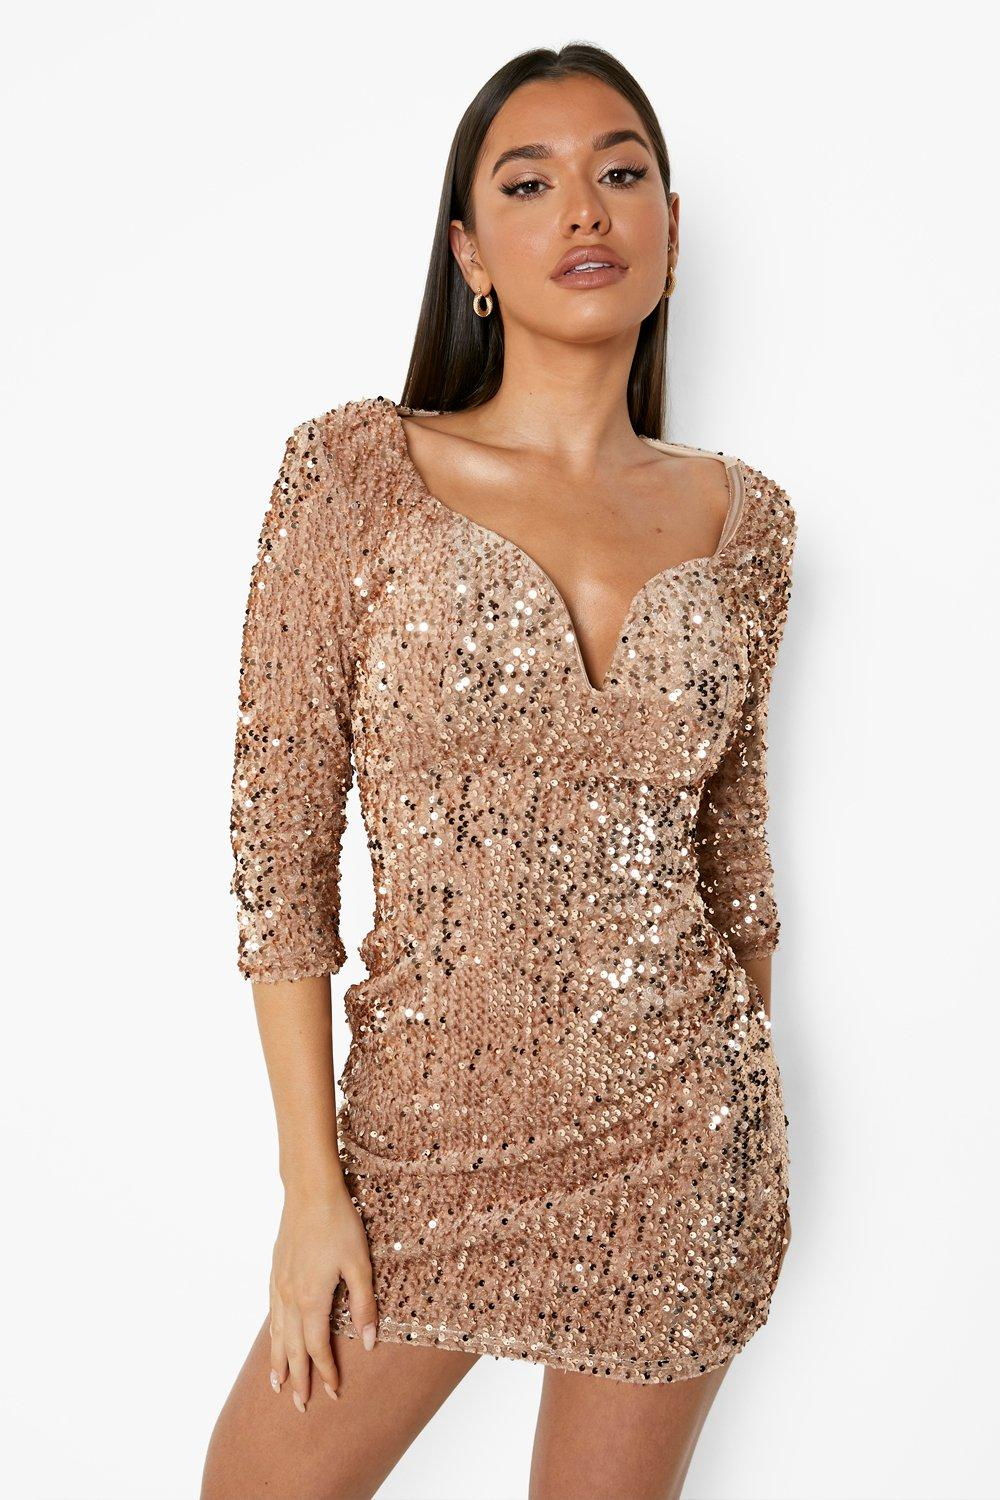 Shop the hottest sequin dresses at Missguided this season and look smokin' in sparkly gold, silver and black. Order today for your party.